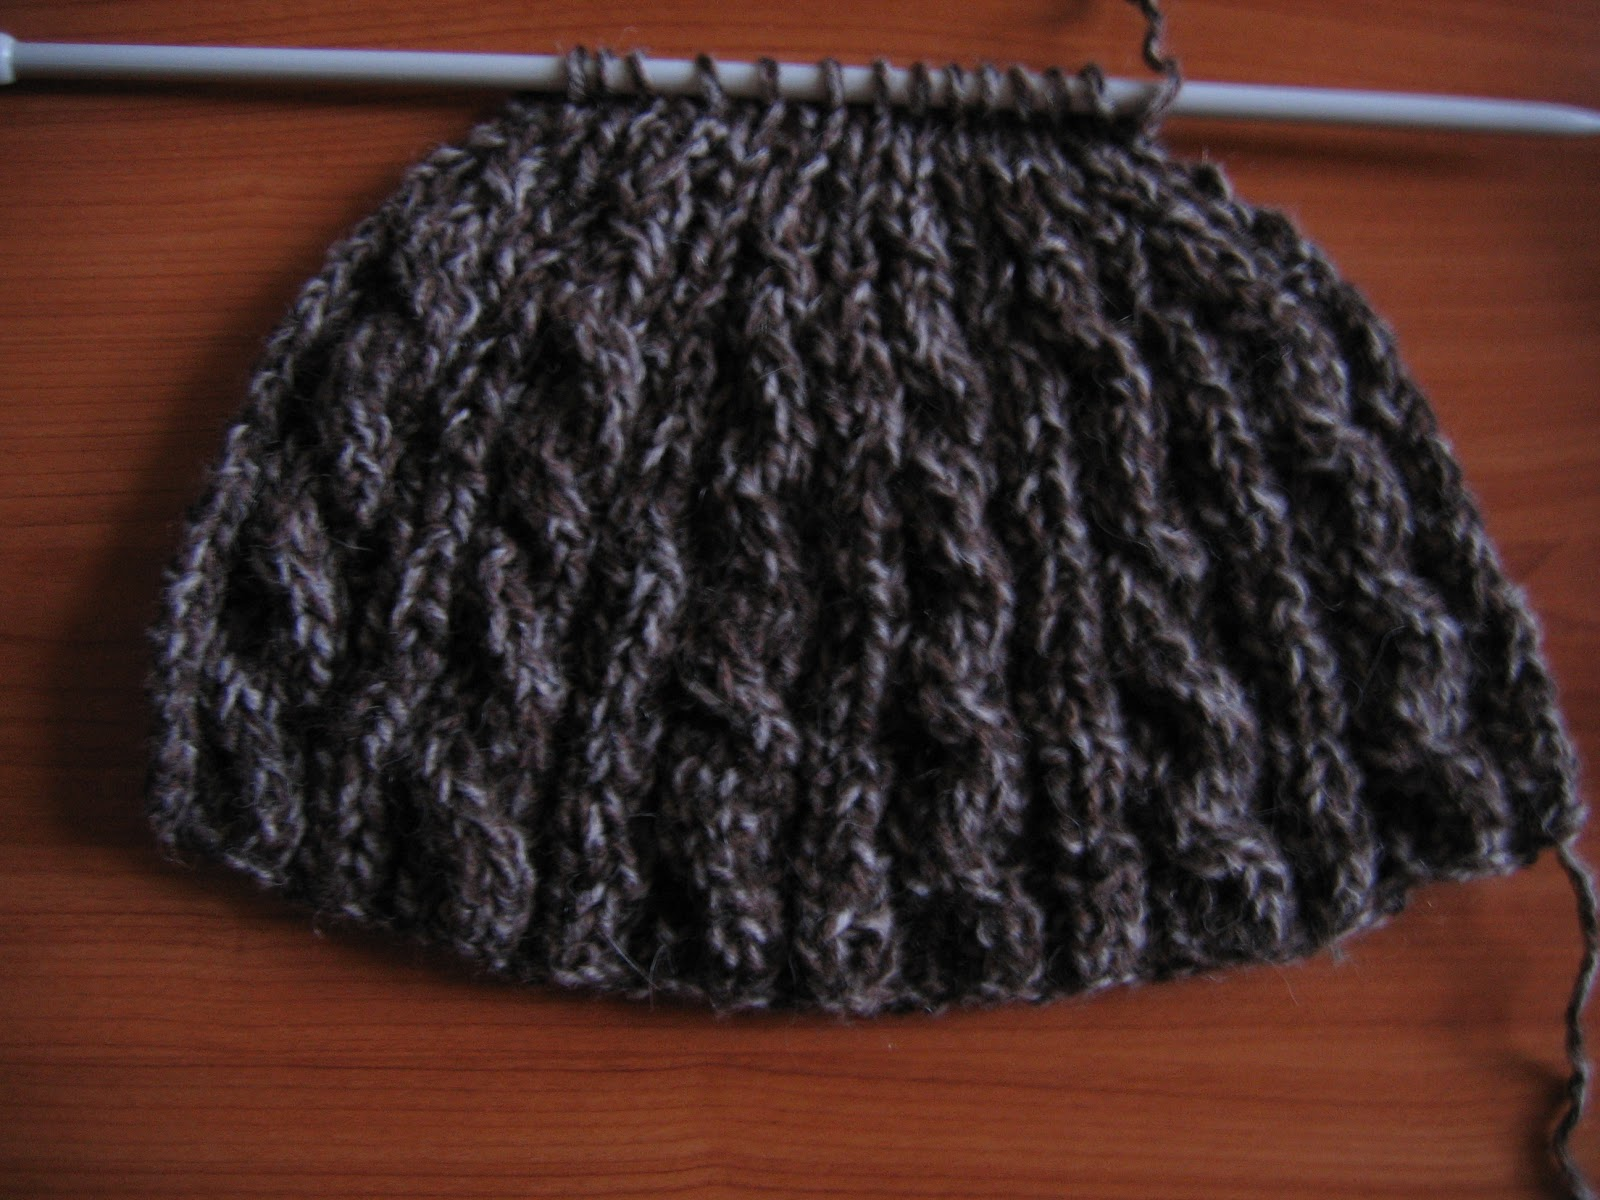 Cours de tricot 13  tricoter un bonnet  YouTube